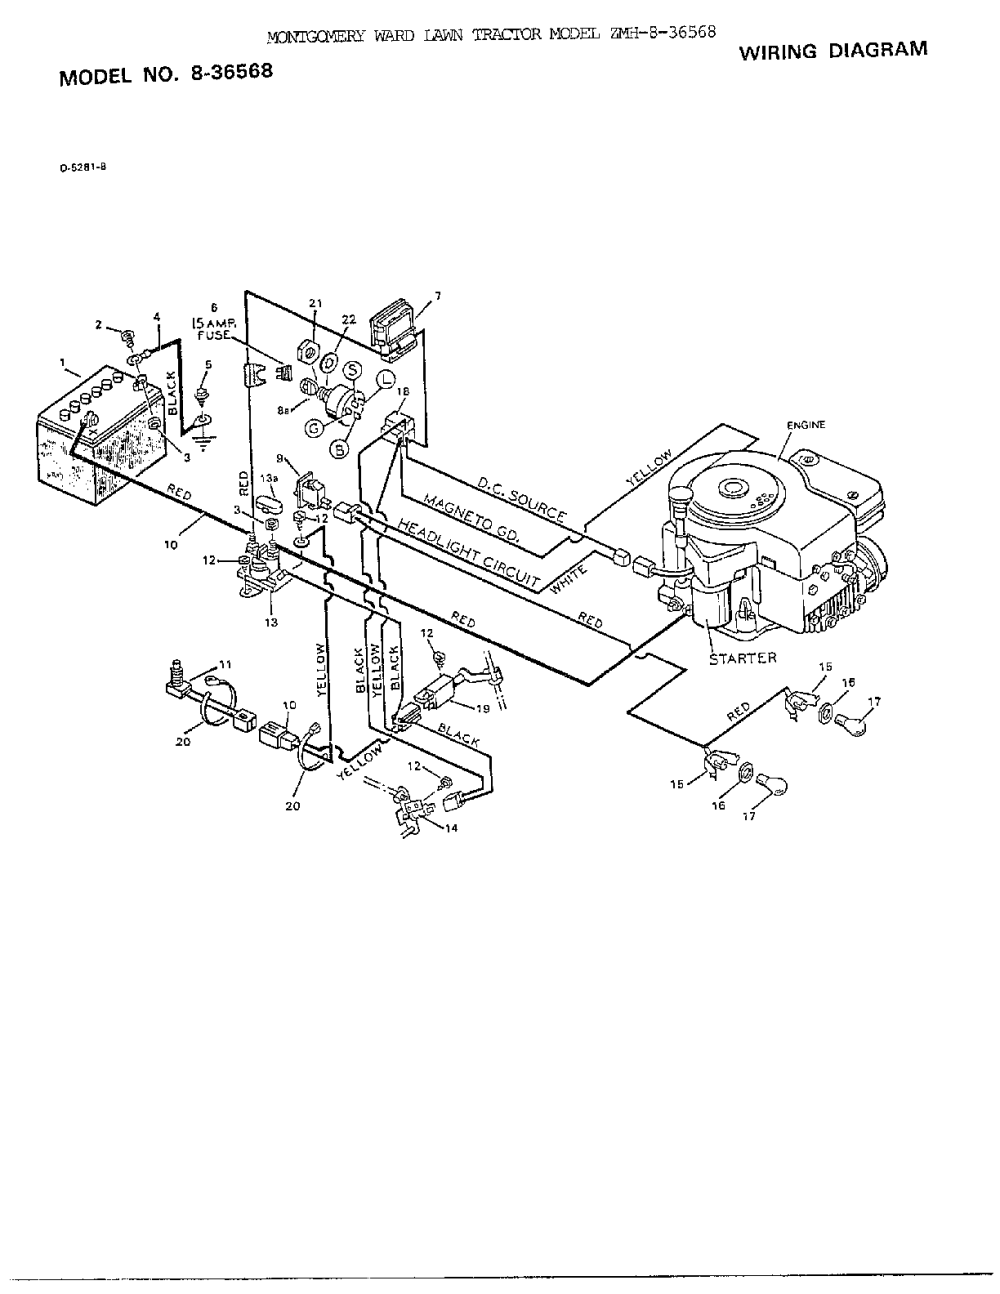 medium resolution of murray 8 36568 wiring diagram diagram